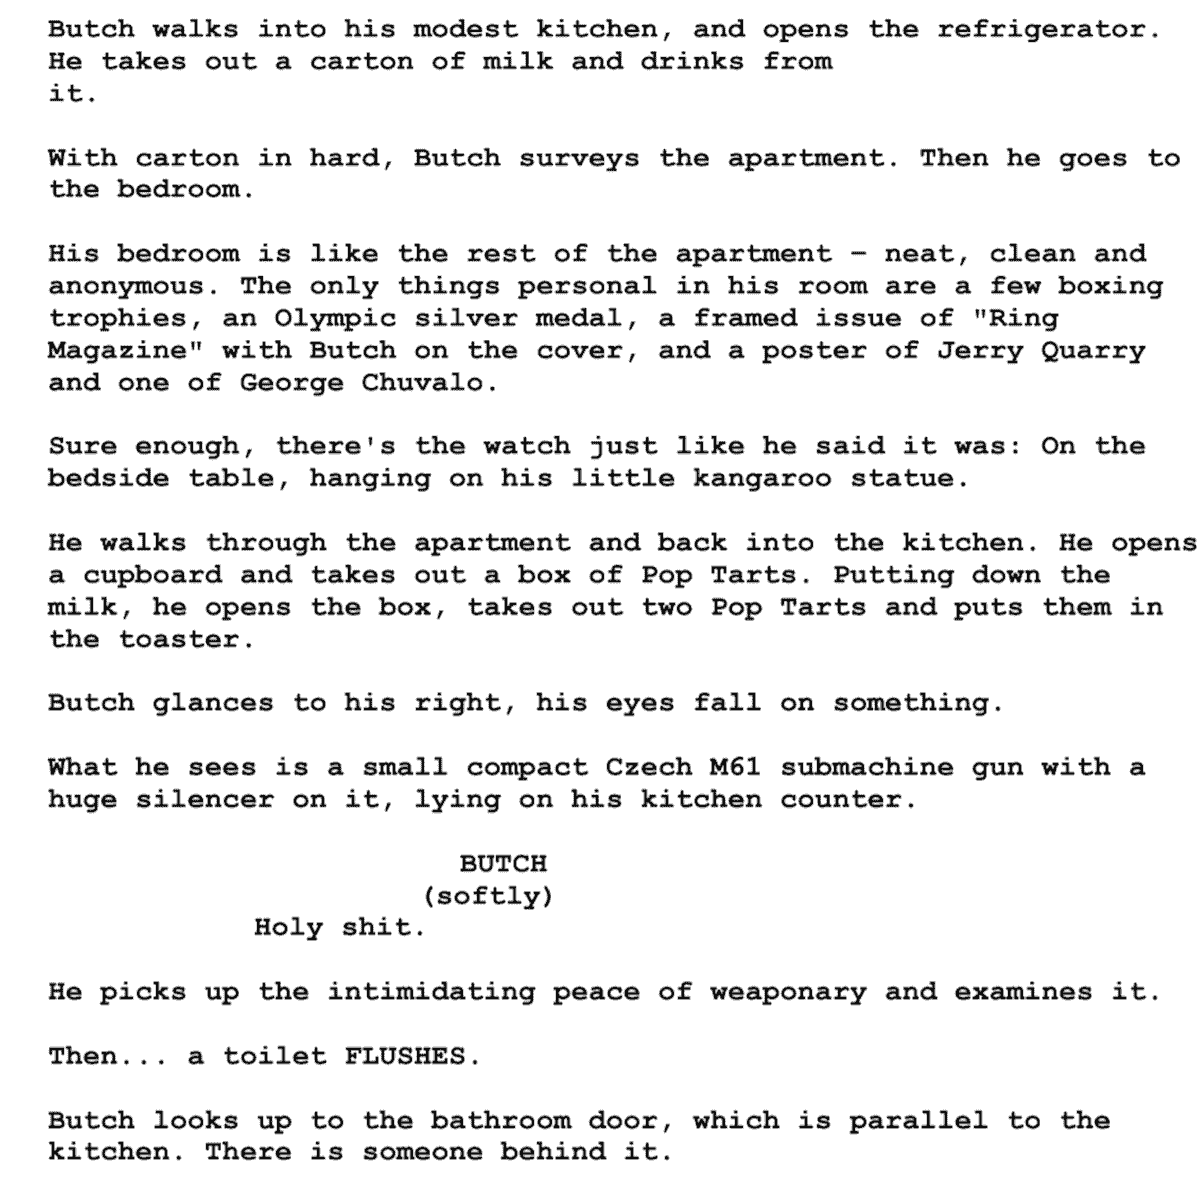 Screenplay Examples - Pulp Fiction Script - Screenplay Snippet 6 - Butch